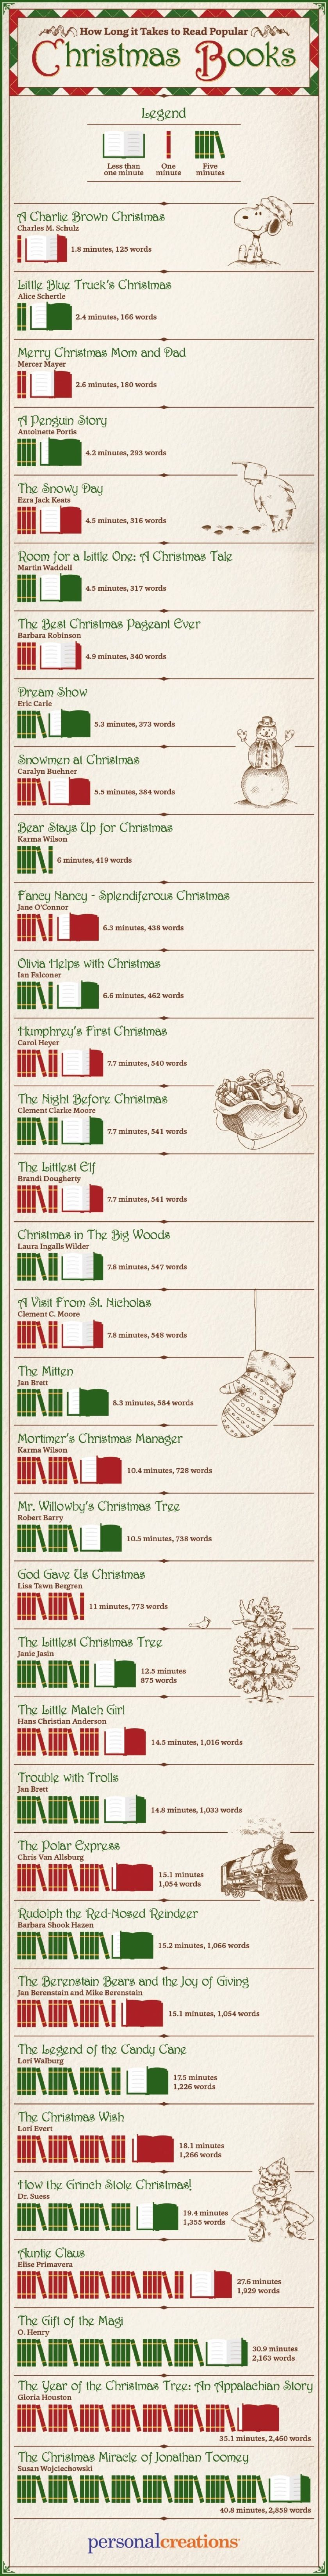 How Long It Takes Kids To Read Popular Christmas Books Infographic